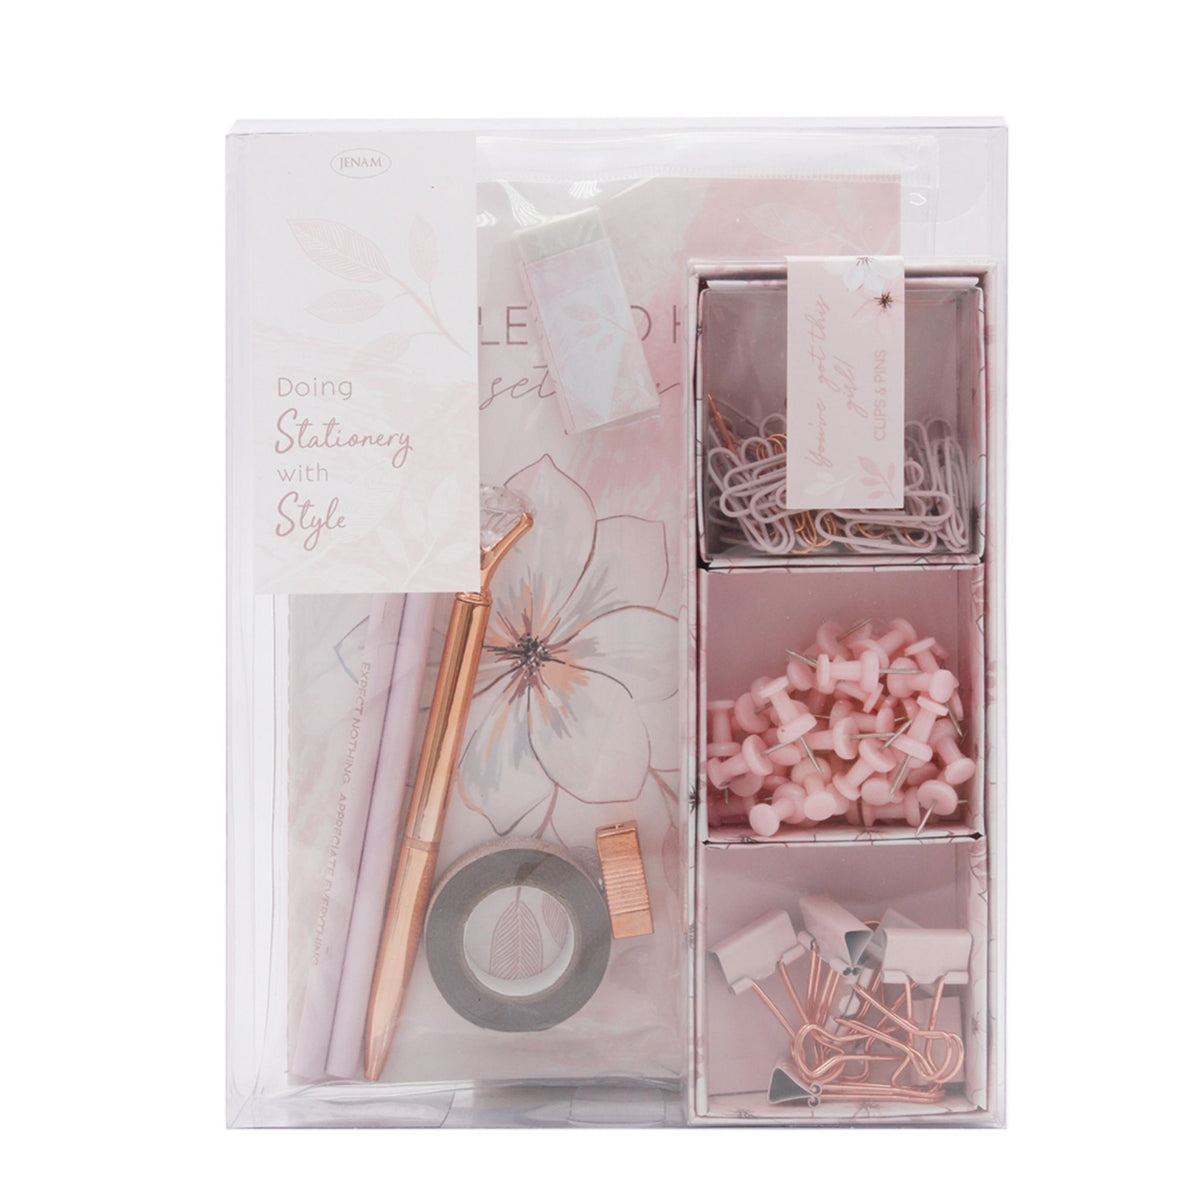 Stationery With Style – Pink and Rose Gold Stationery Set